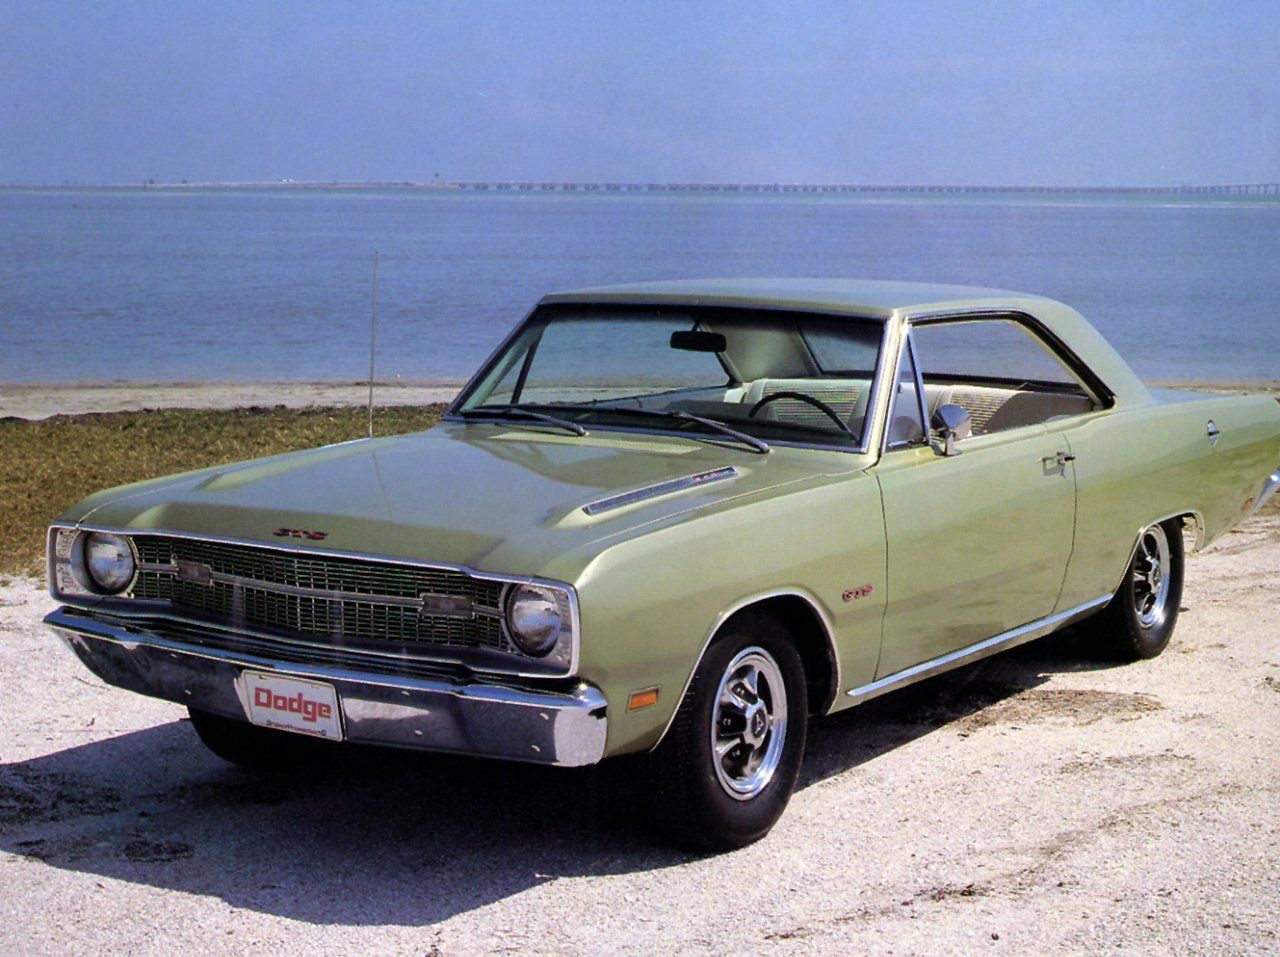 1969 Dodge Dart Gts 340 Green Maintenance Restoration Of Old